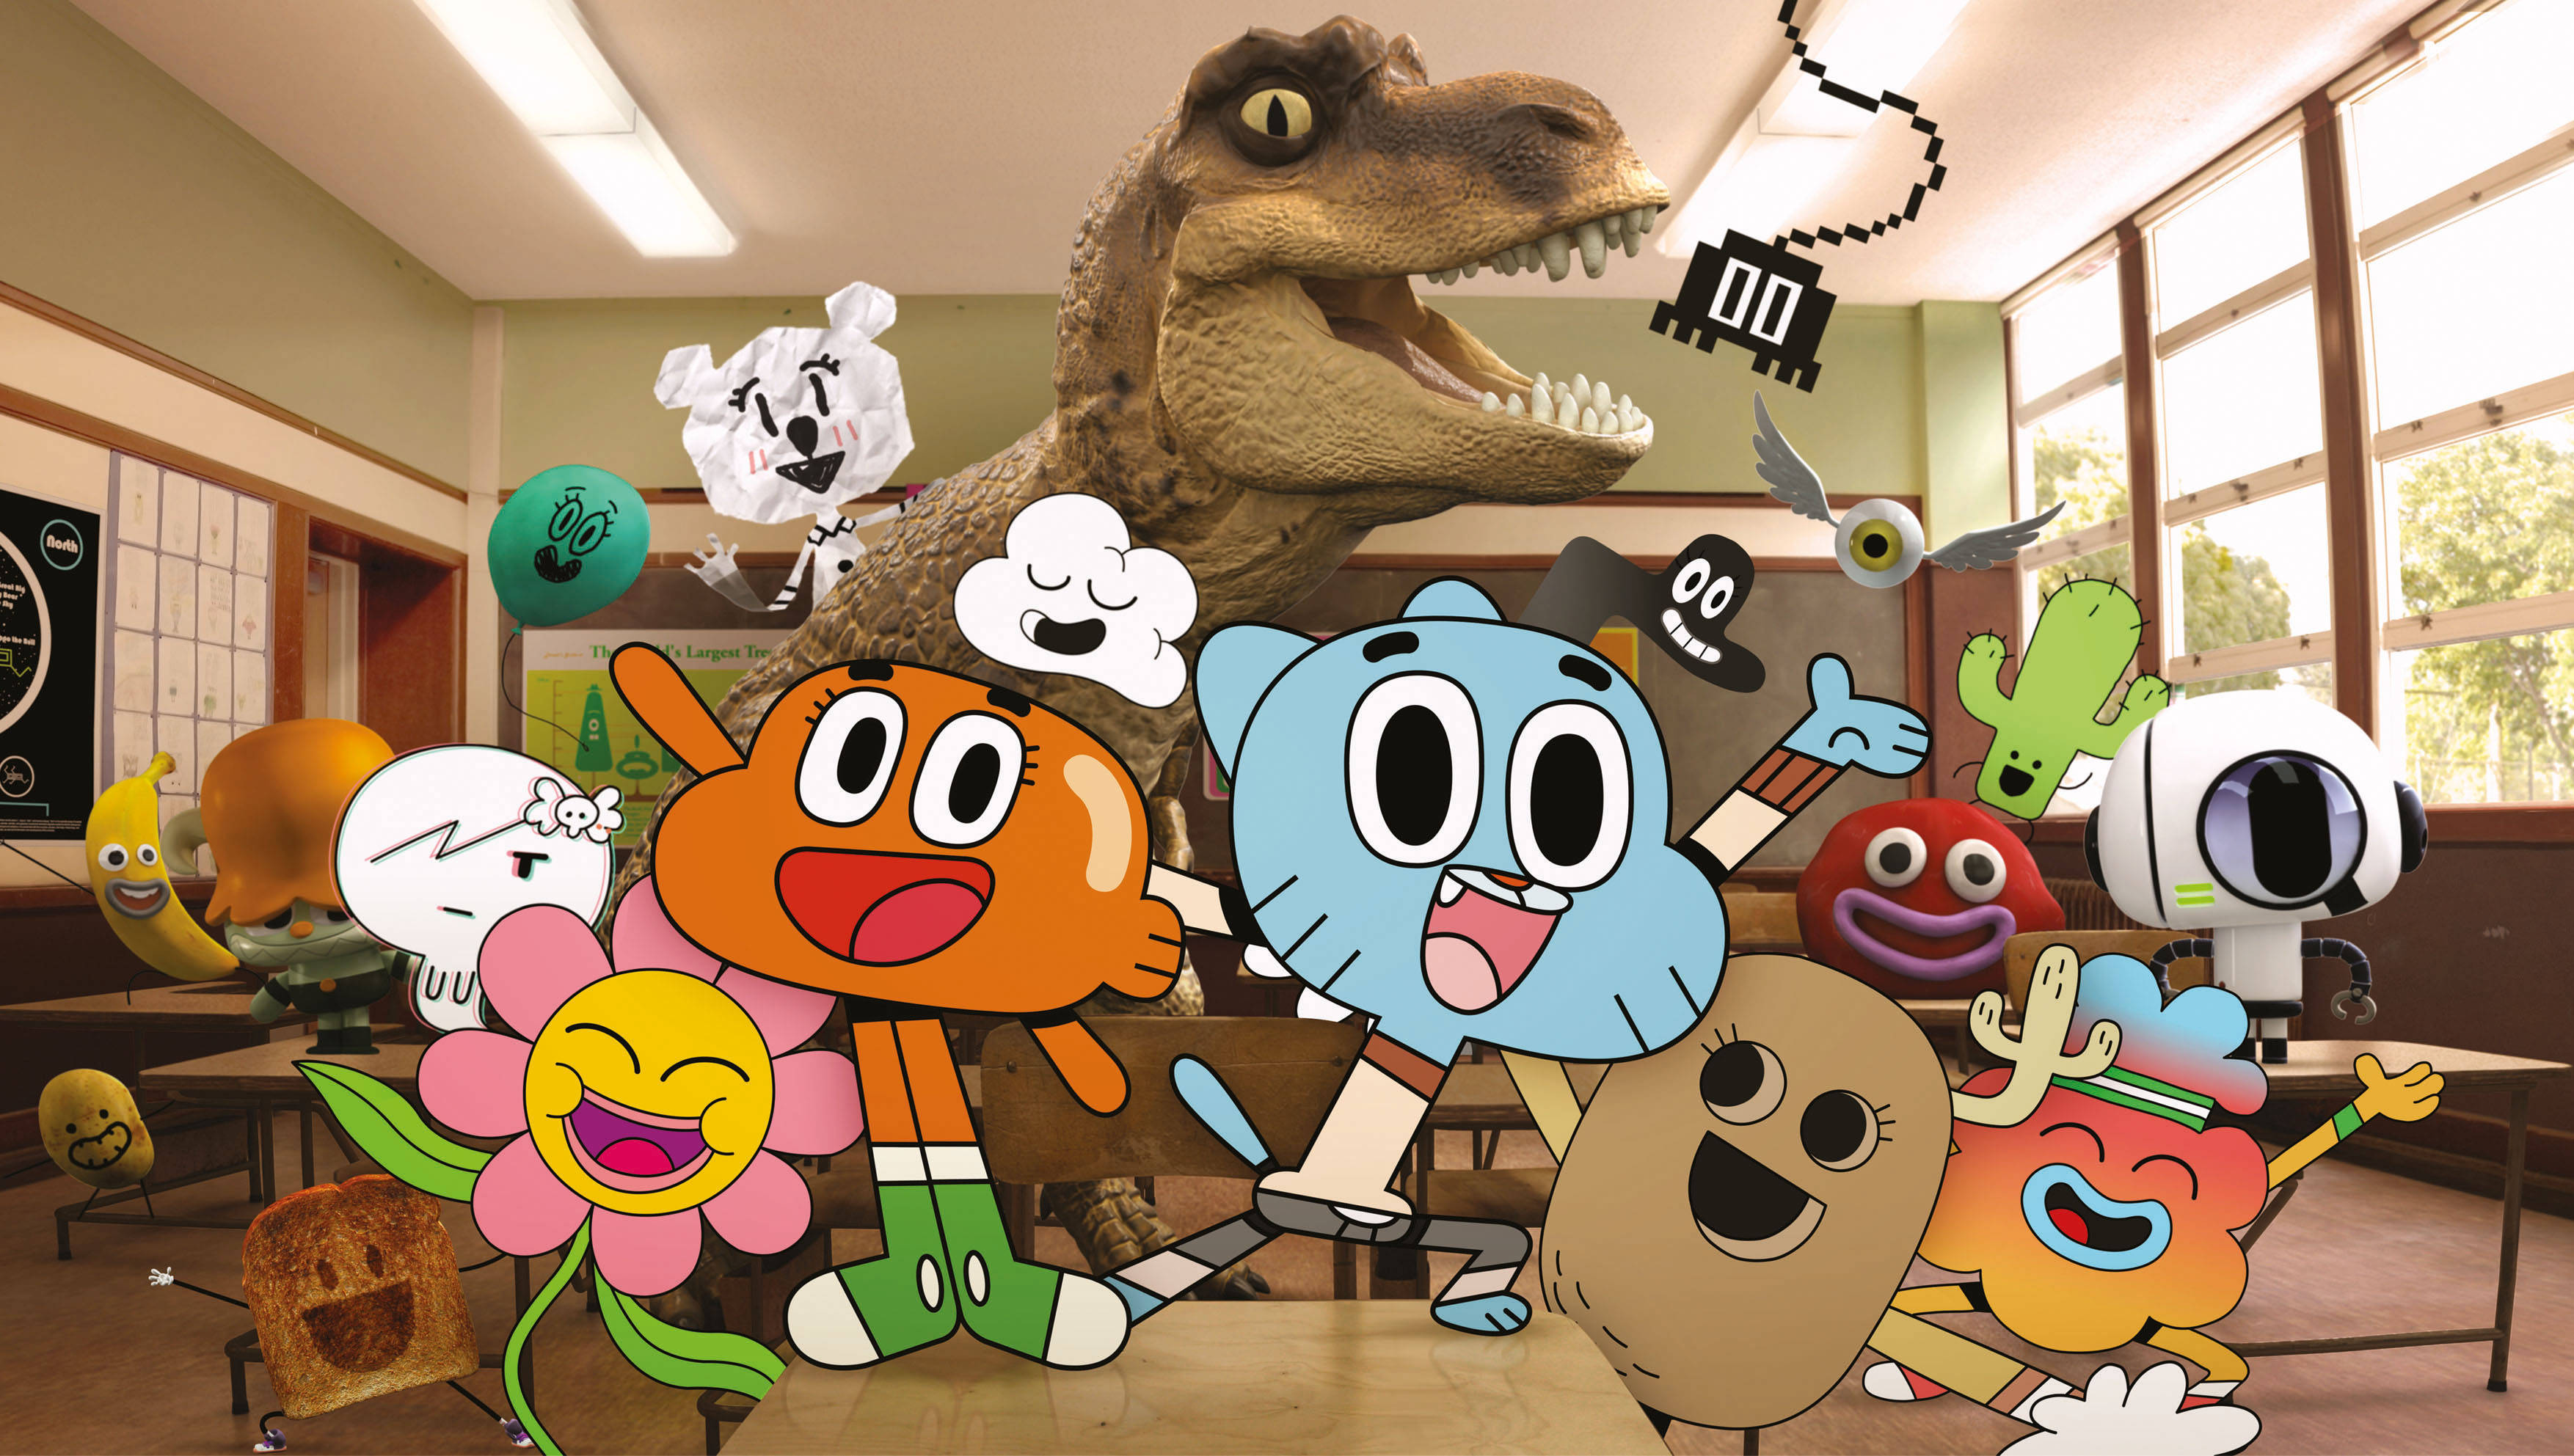 http://designyoutrust.com/wp-content/uploads/2012/07/amazing-world-of-gumball-characters.jpg